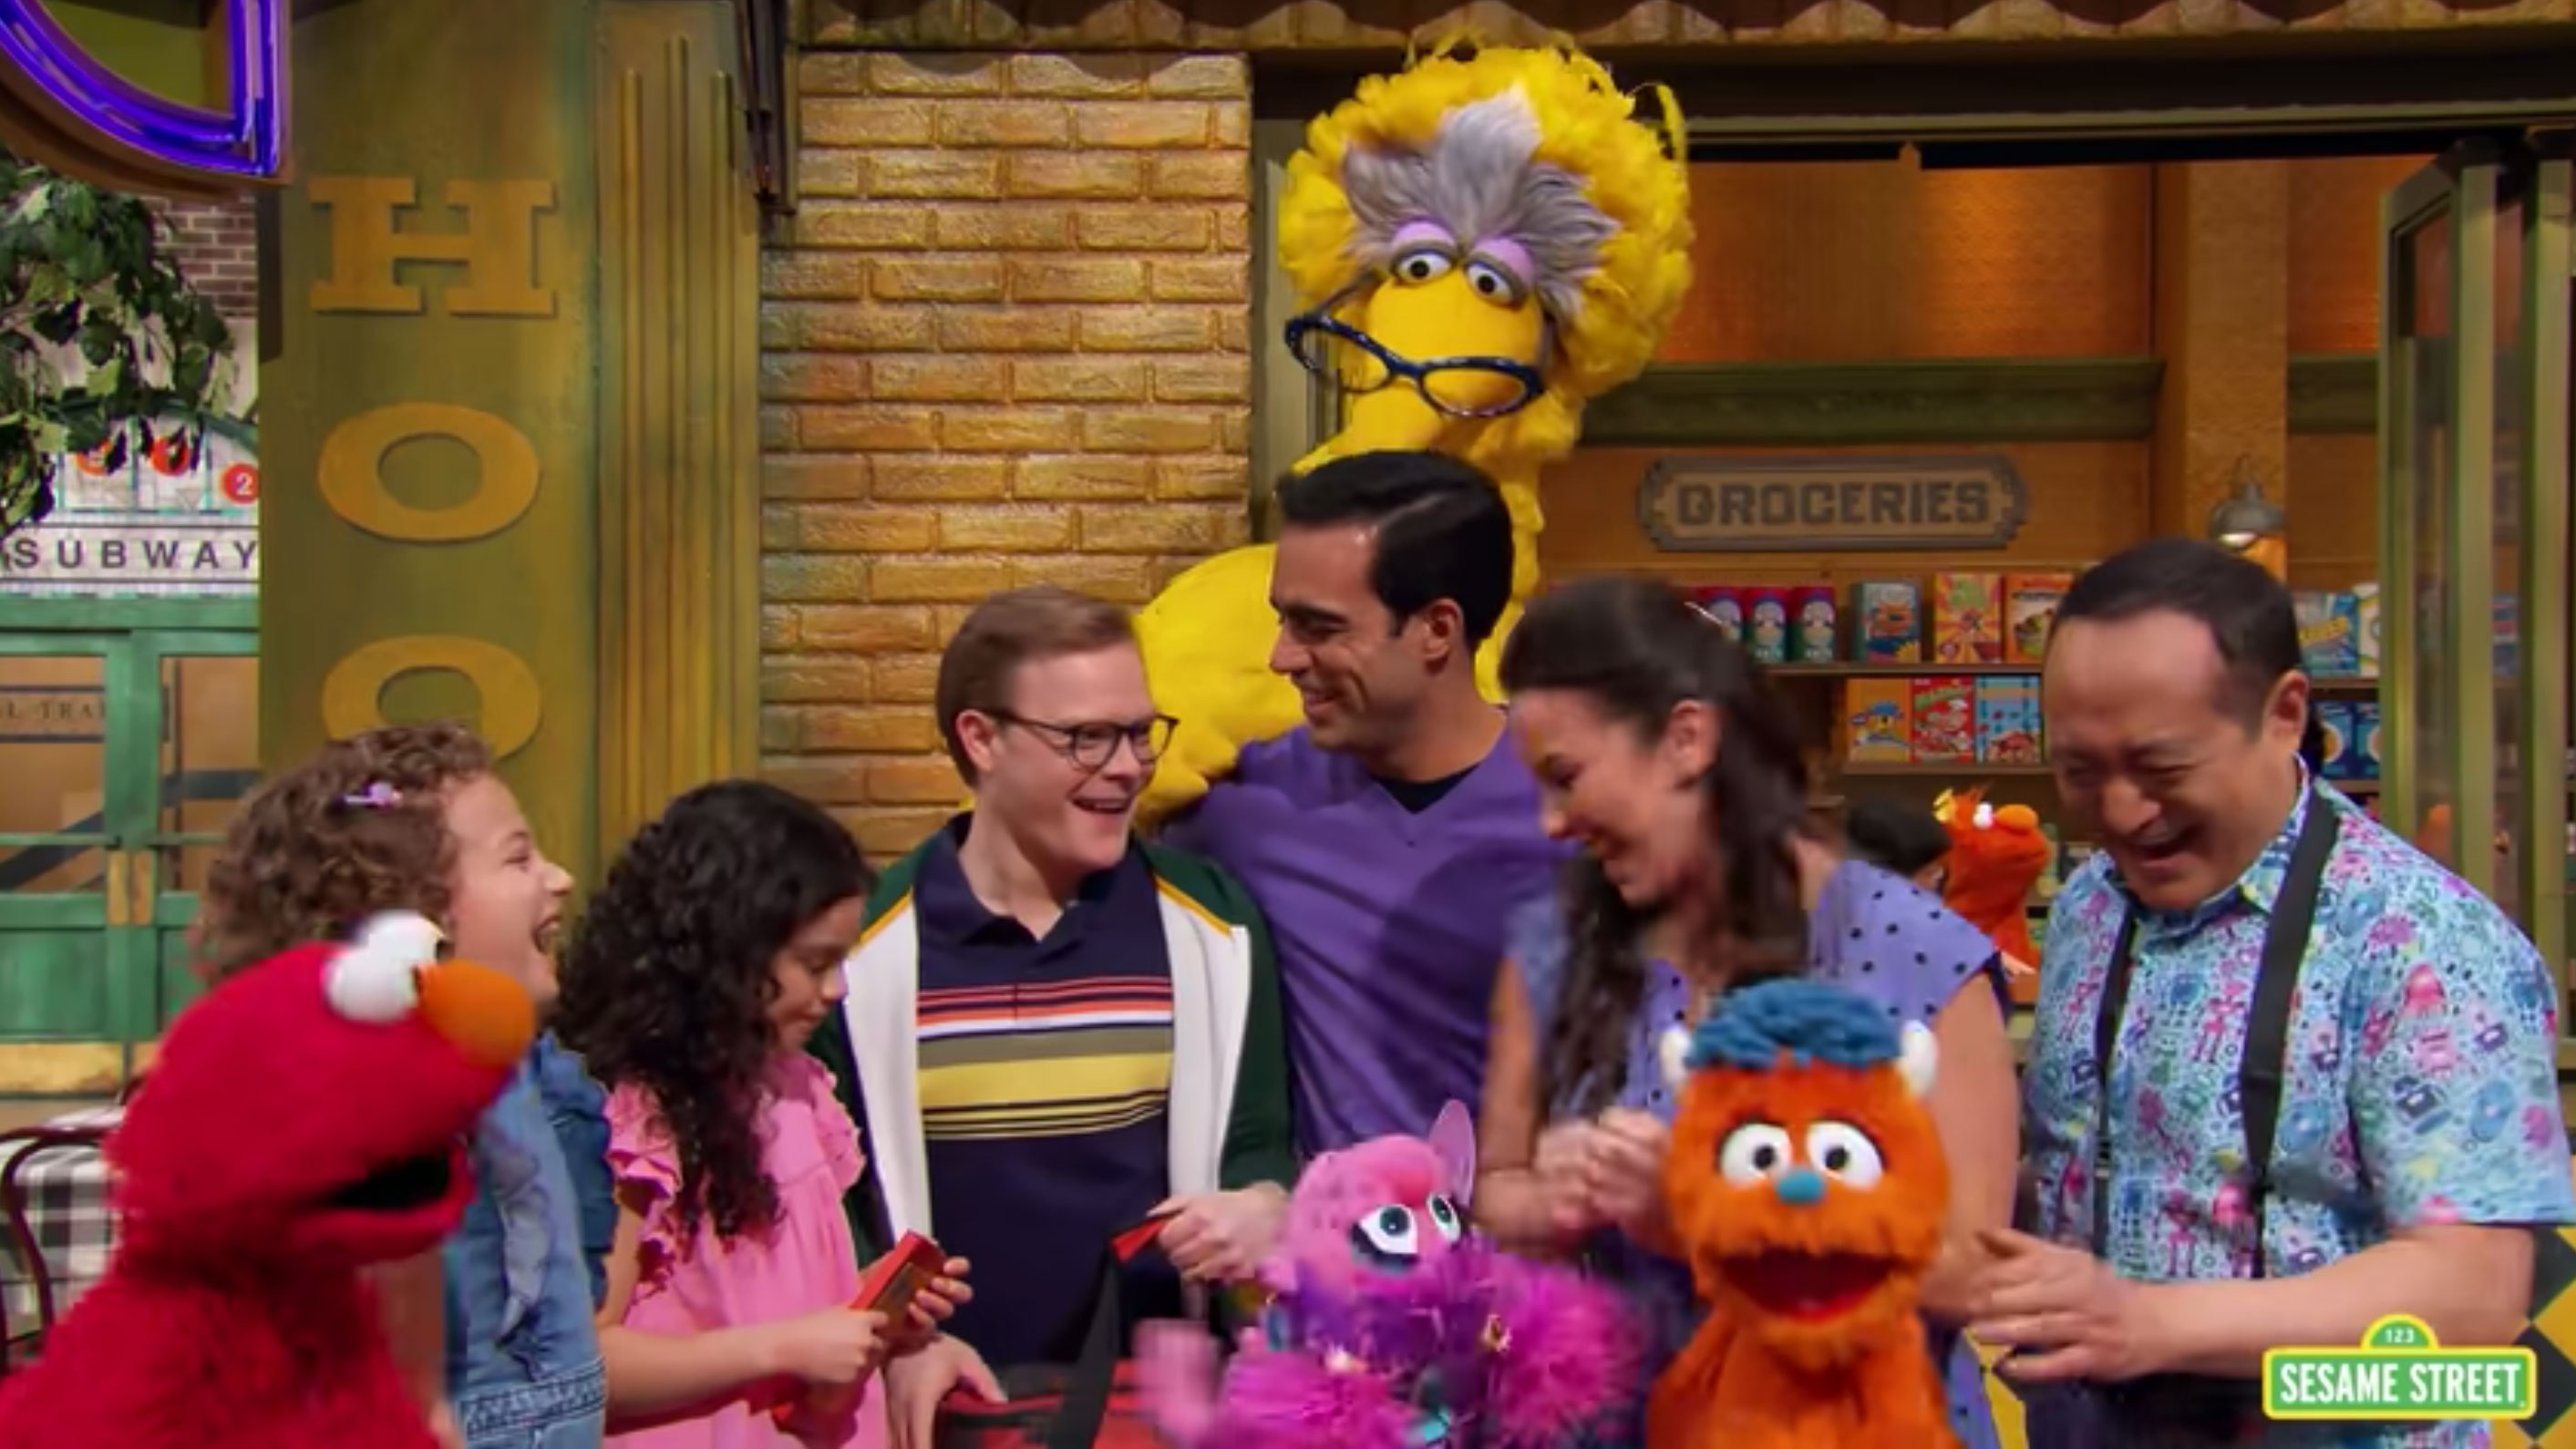 Sesame Street introduces family with two gay dads during Pride Month